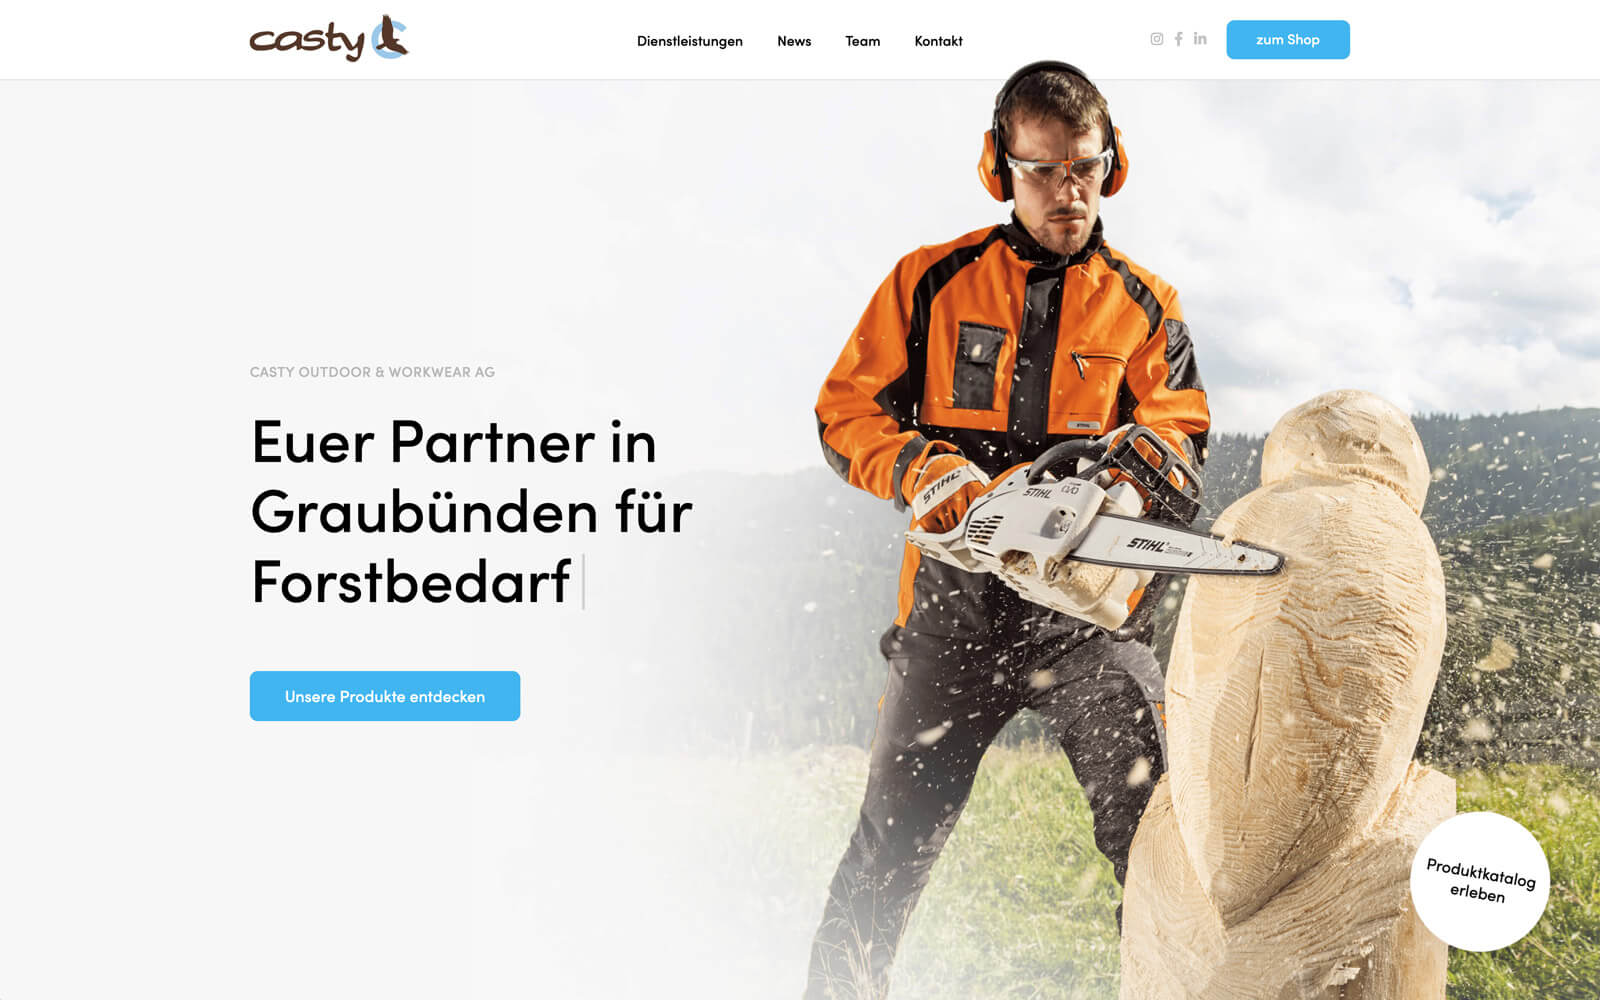 casty outdoor & workwear ag